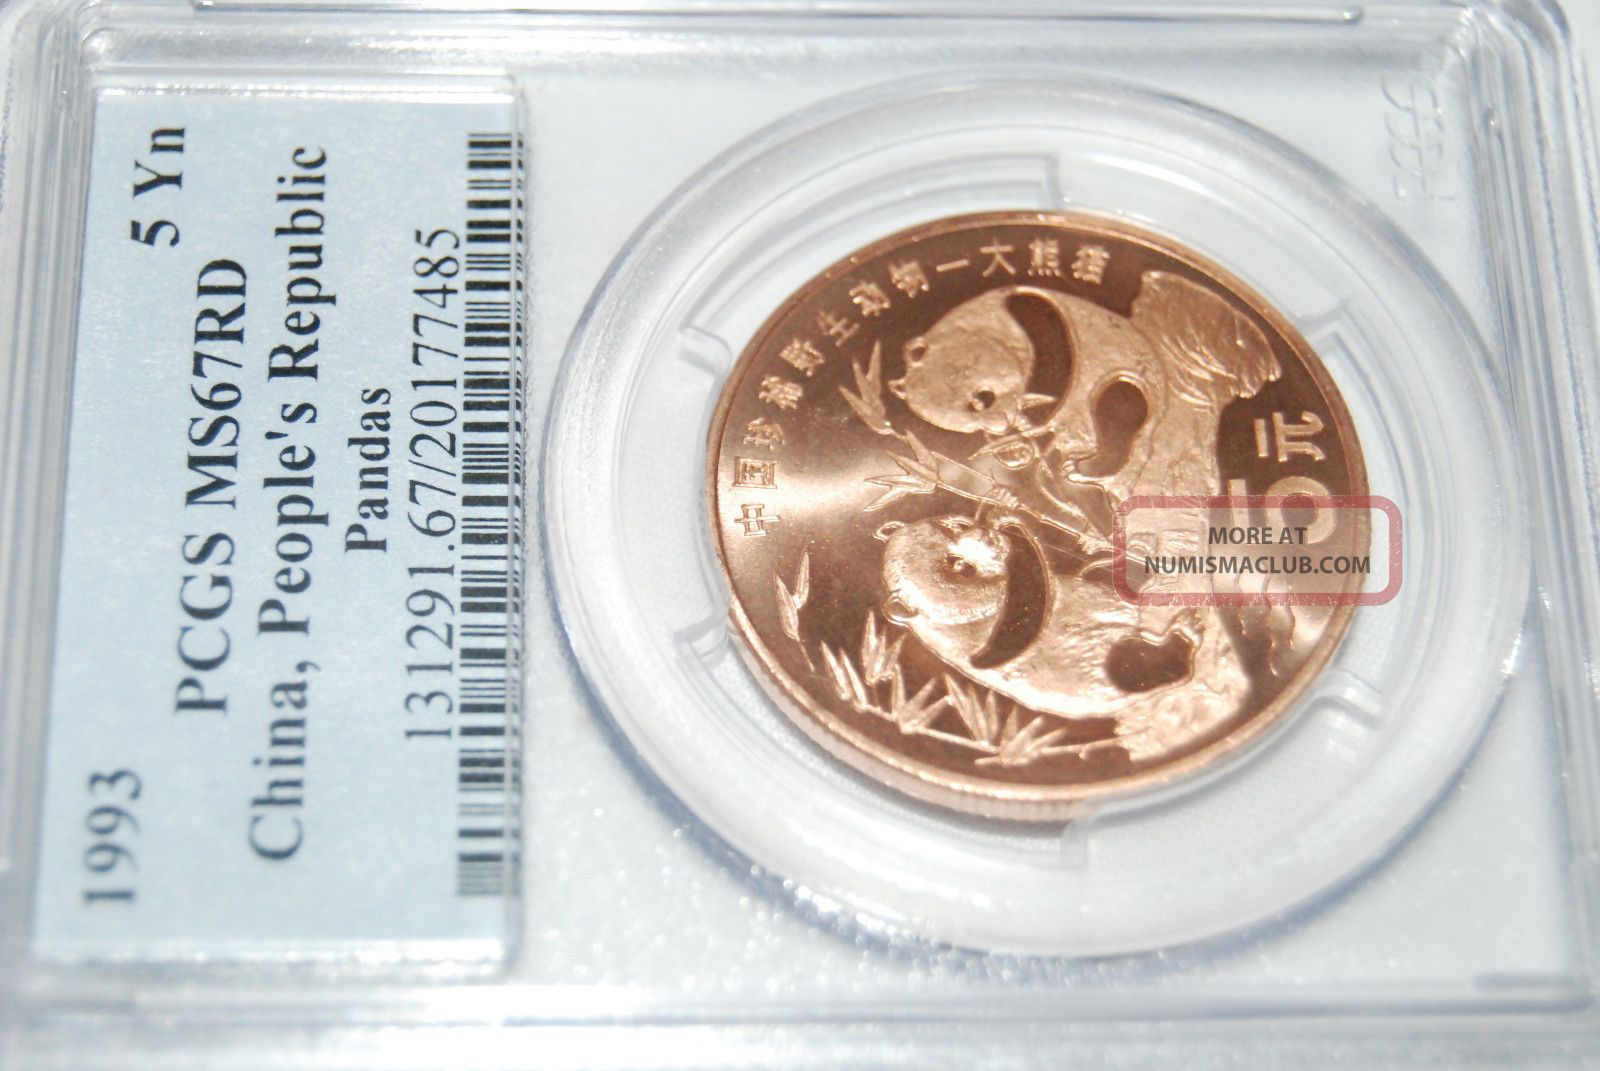 1993 China Panda C5y Pcgs Ms67 Rd Copper Coin China photo